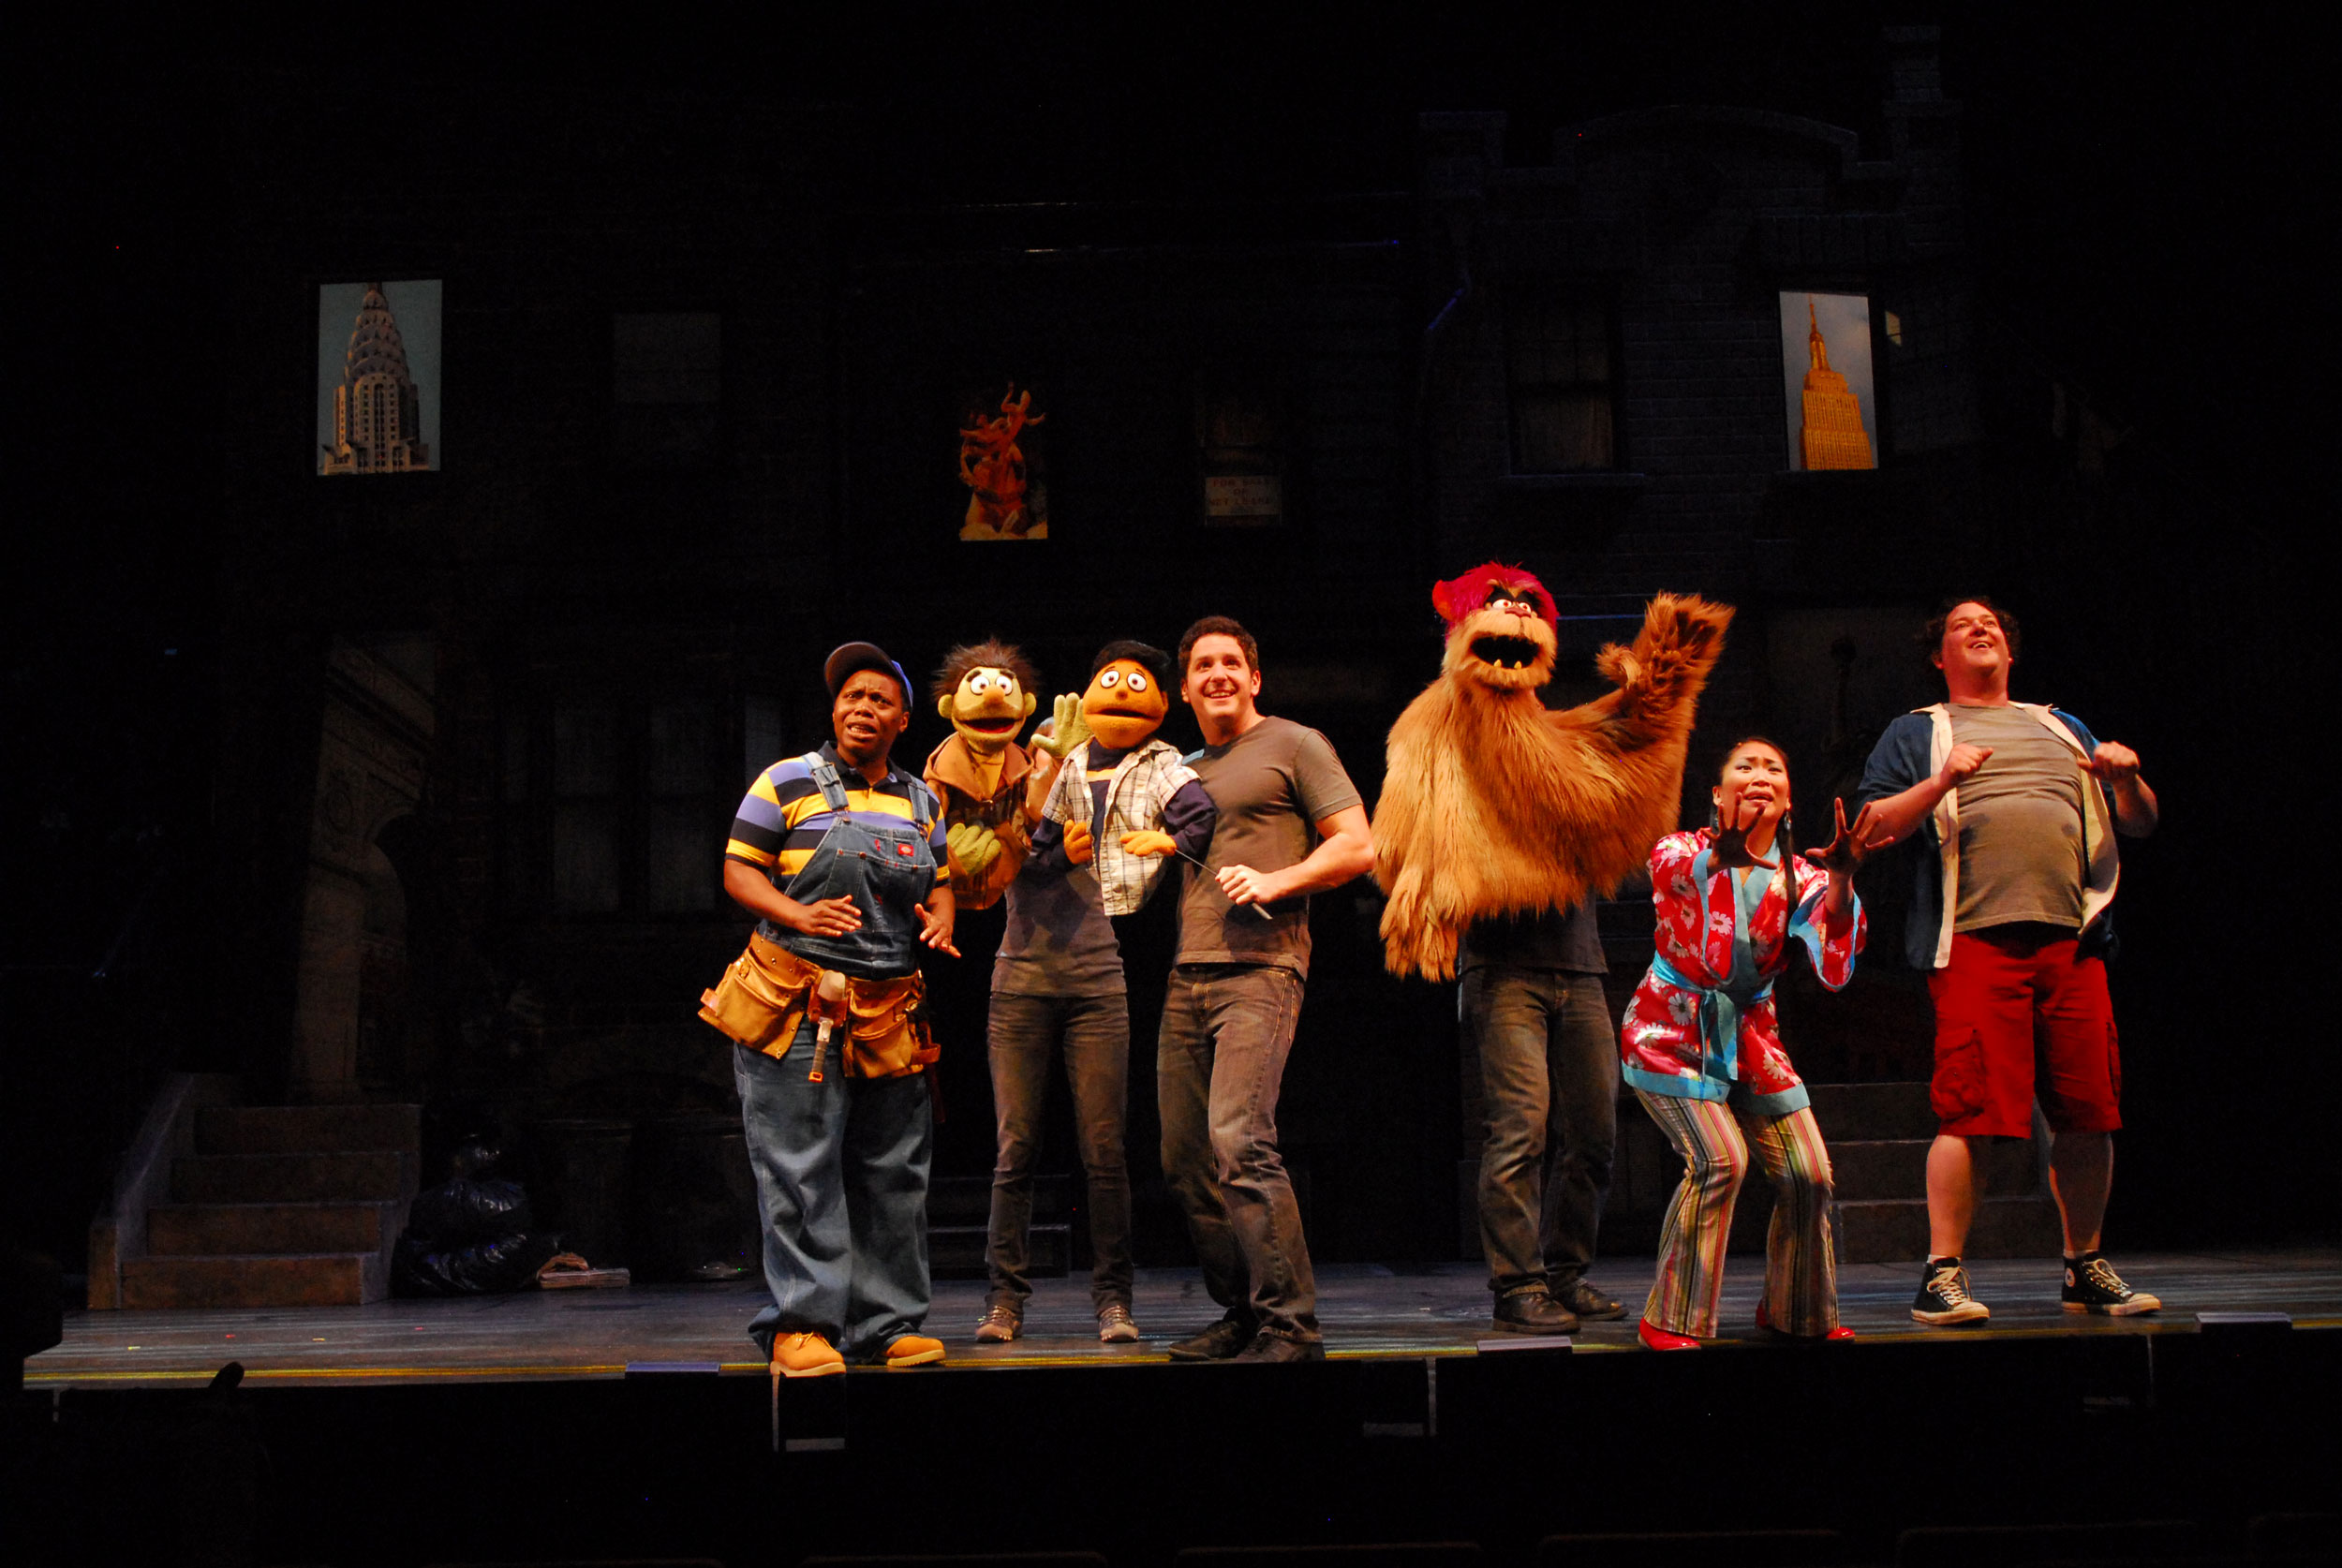 2011_OP_Avenue-Q_Zonya-Love_Lexy-Fridell_Howie-Michael-Smith_Chris-Cooke_Rebecca-Larkin_Jayson-Elliott_RGB.jpg